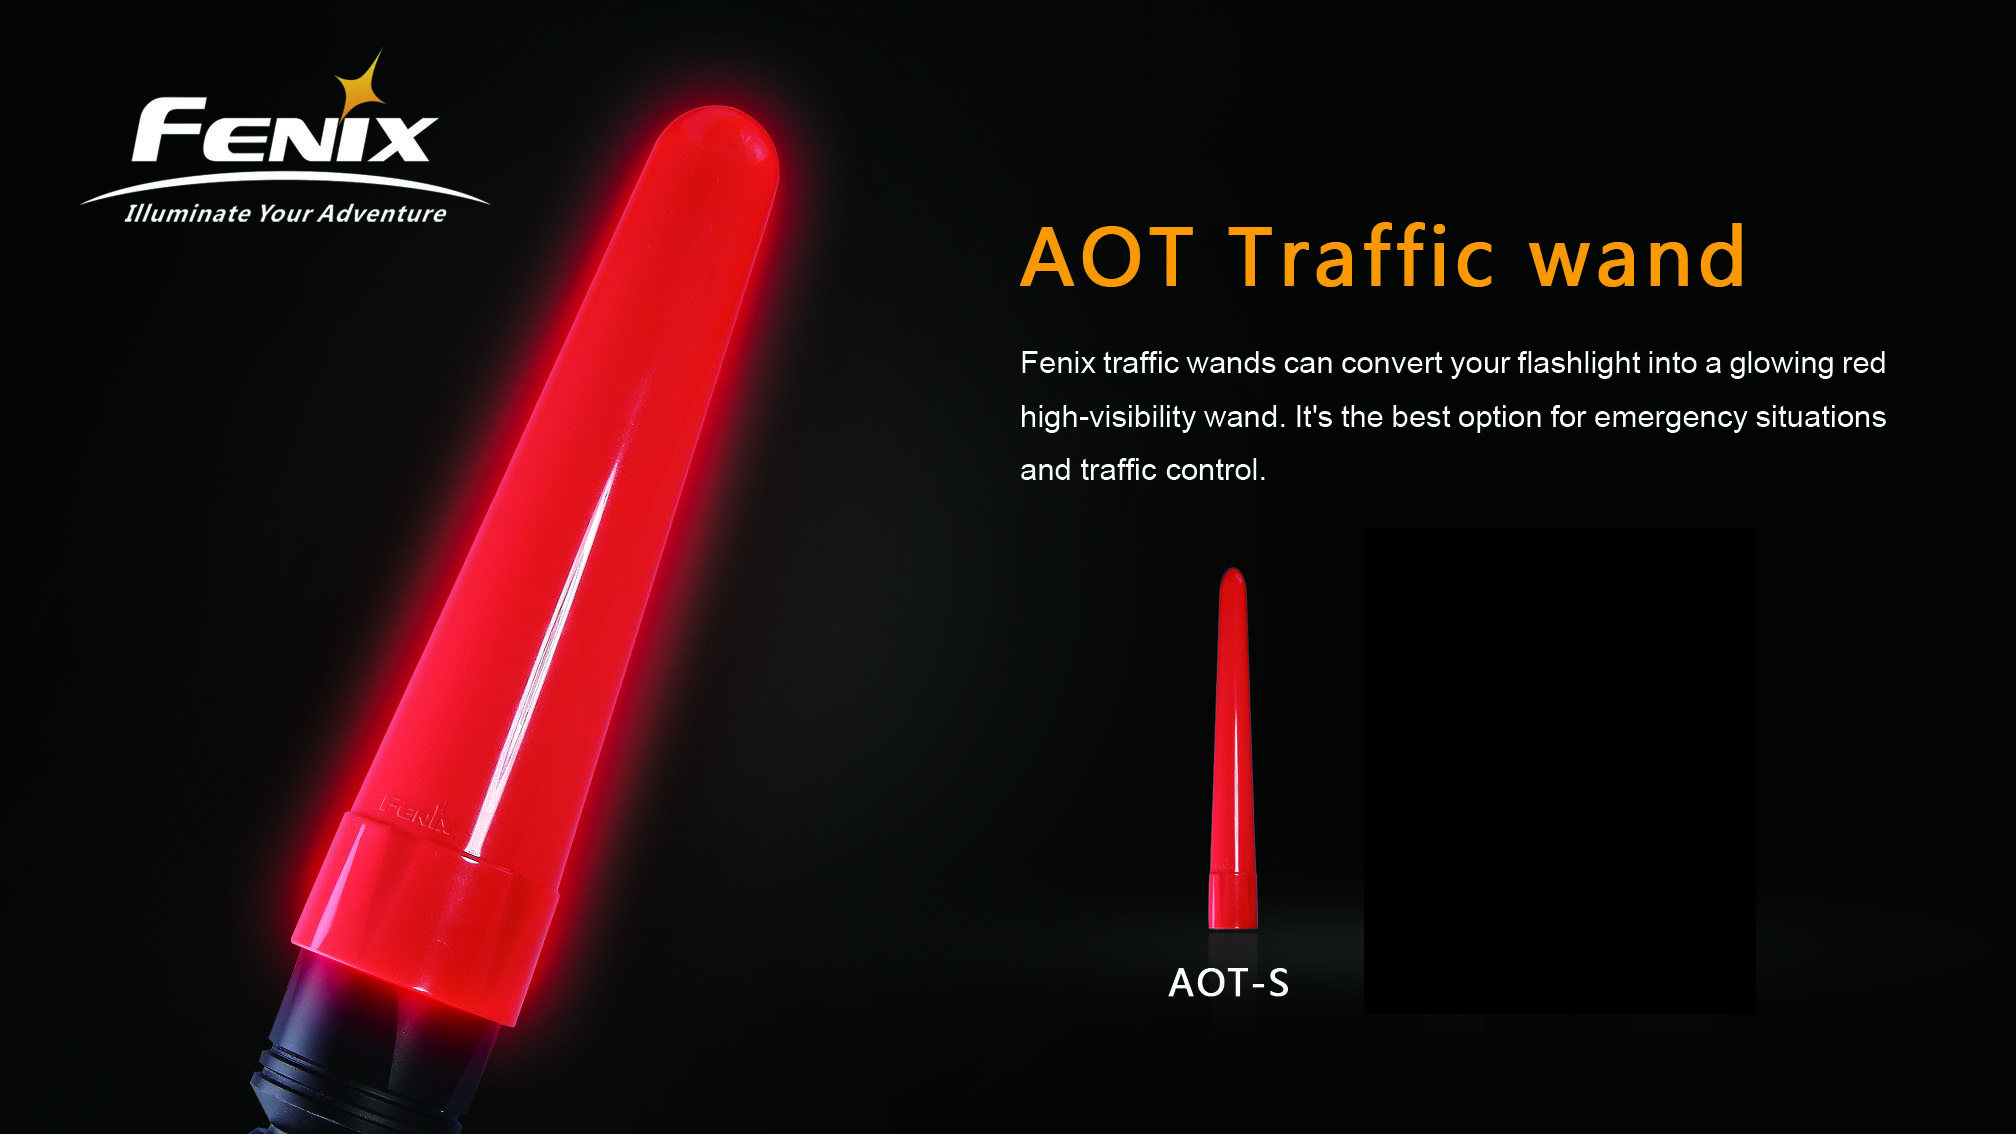 Fenix AOT-S Traffic Wand